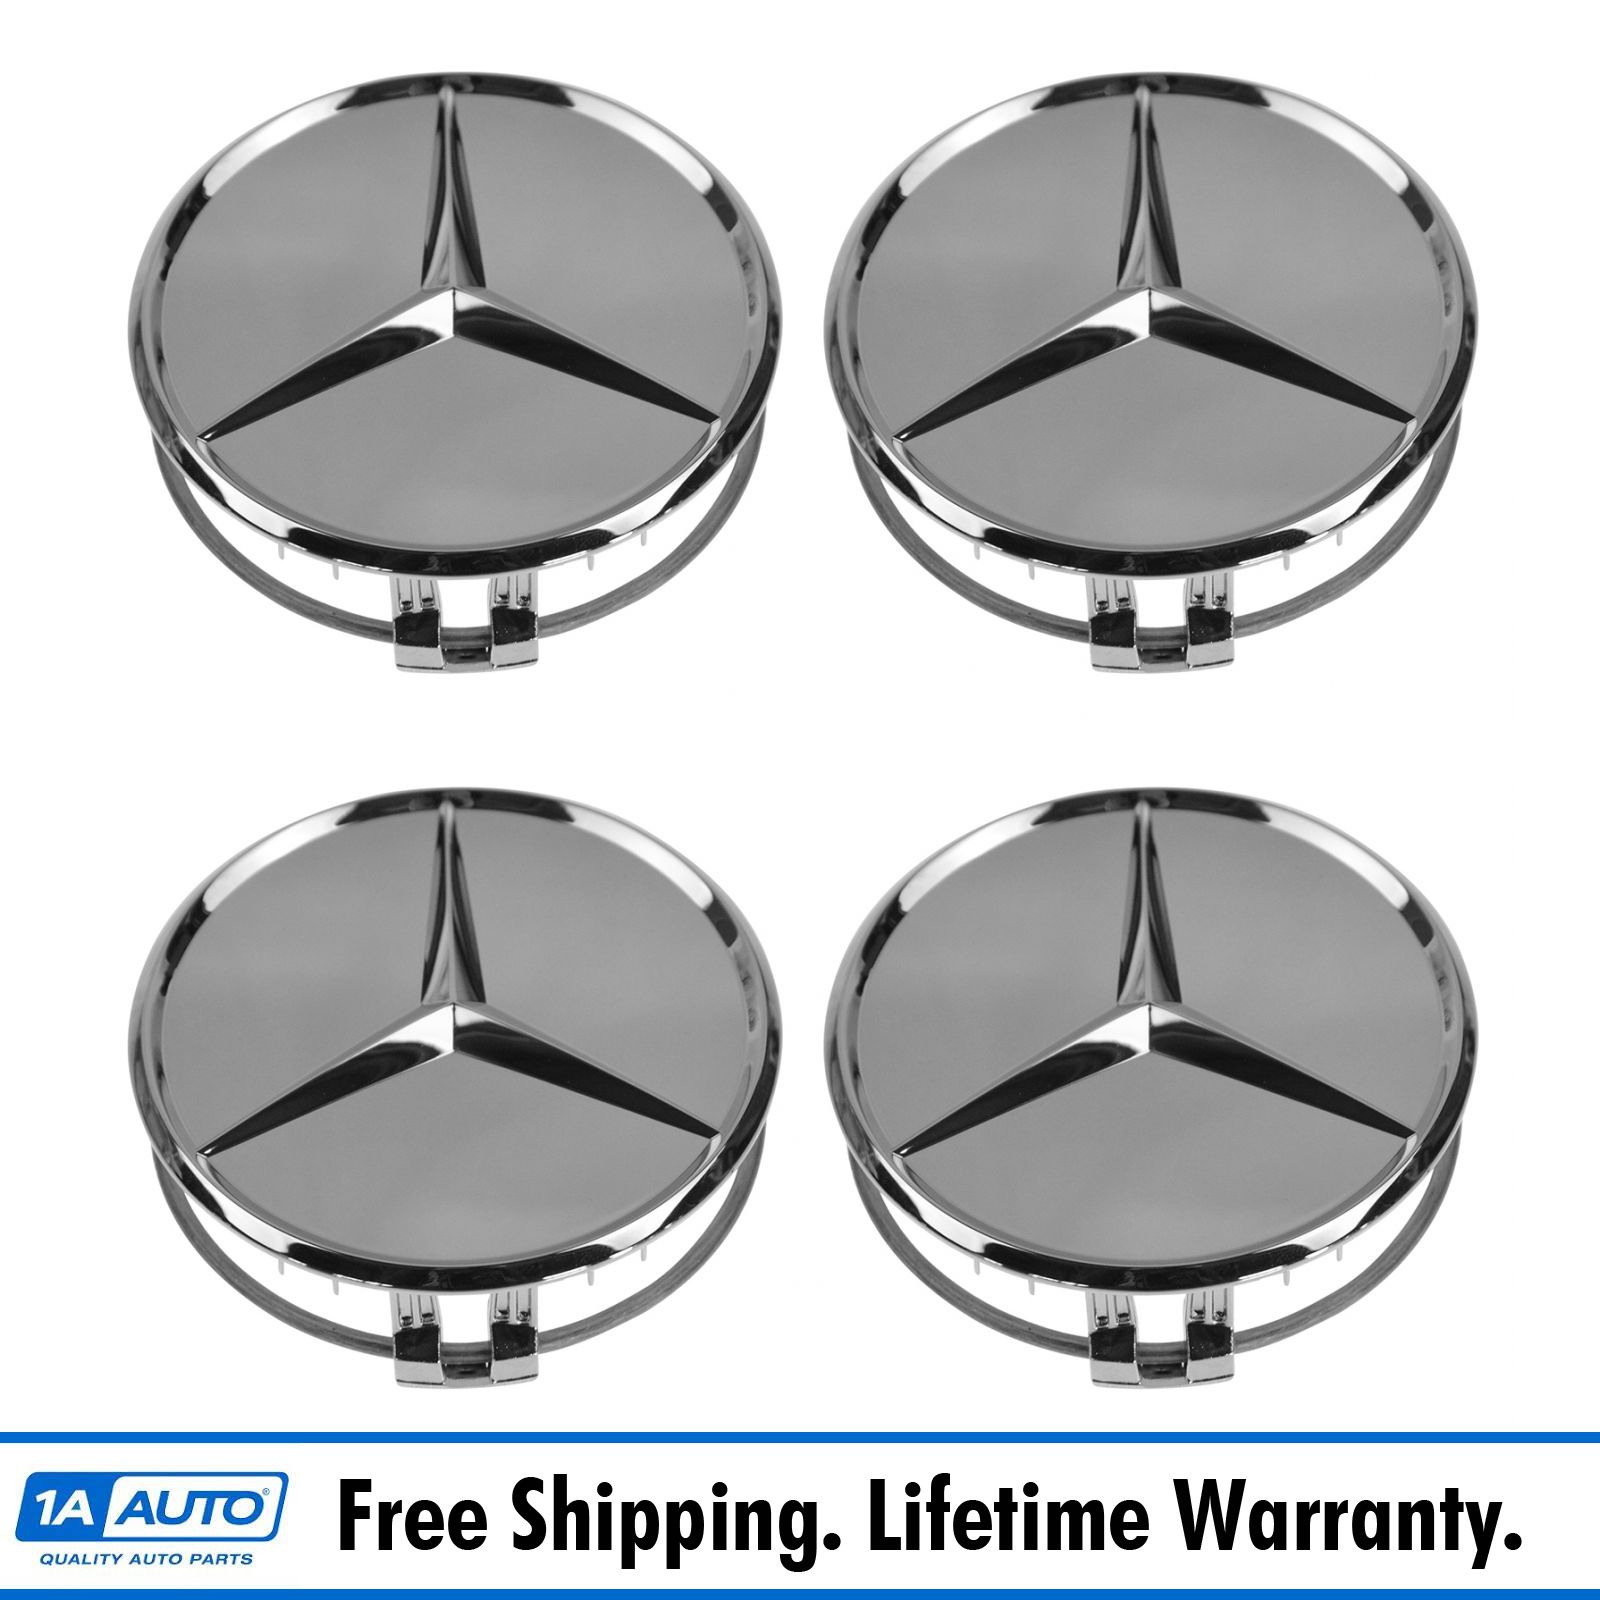 Oem wheel center cap with raised star set of 4 chrome for for Mercedes benz center cap